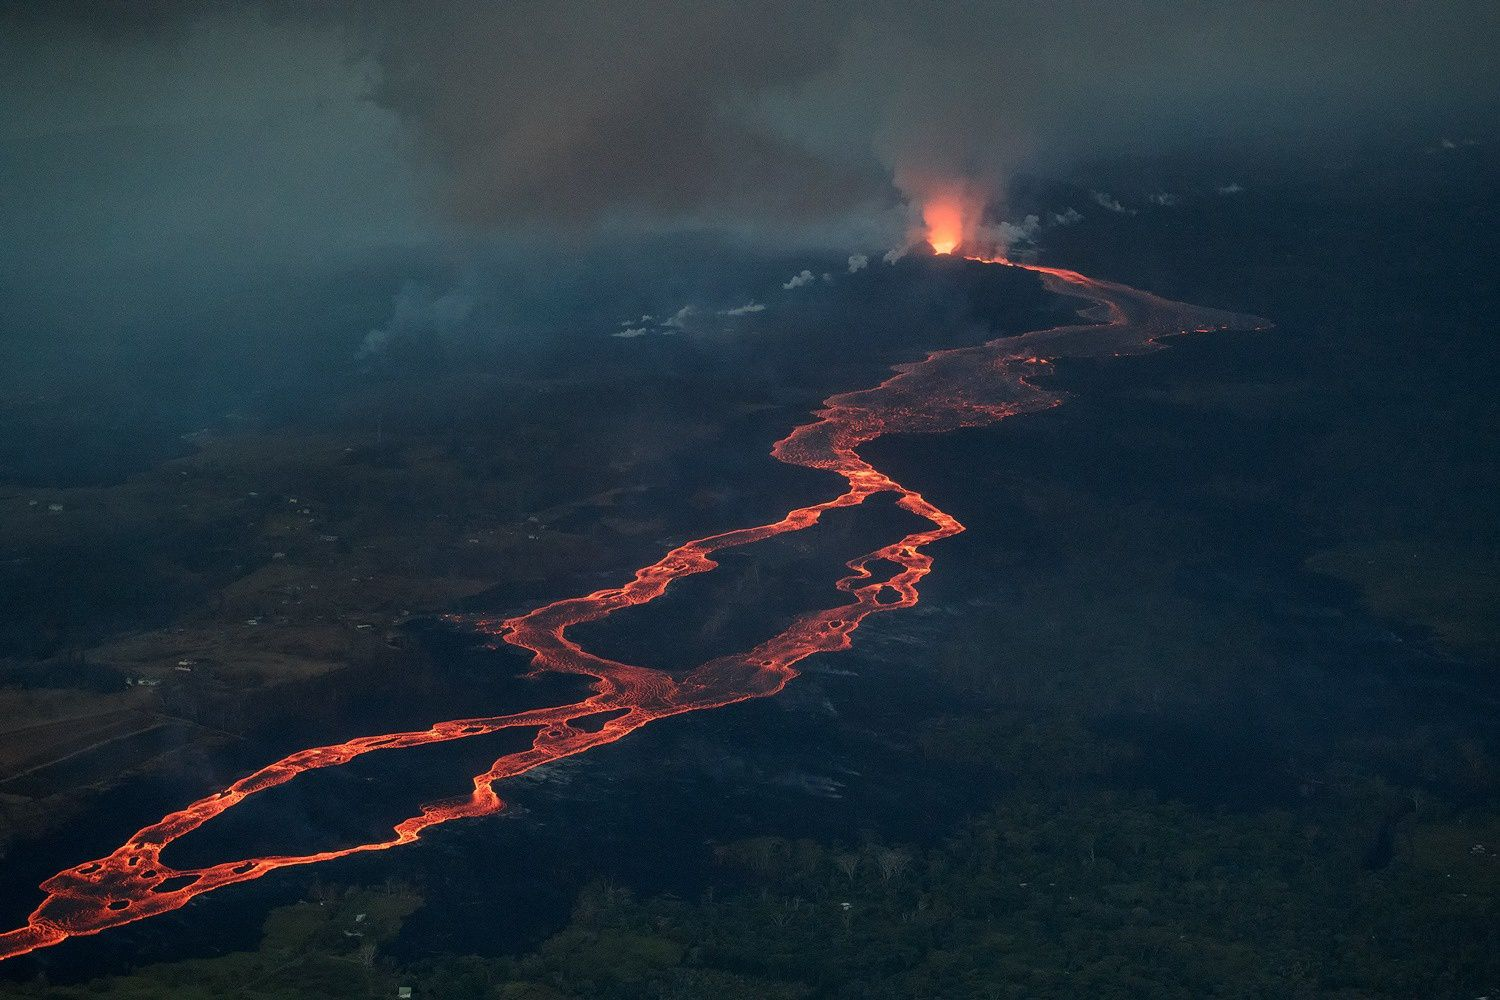 Kilauea East Rift Zone - Fissure 8 feeds a perched canal - photo 02.07.2018 / 05:45 Bruce Omori / Paradise helicopters